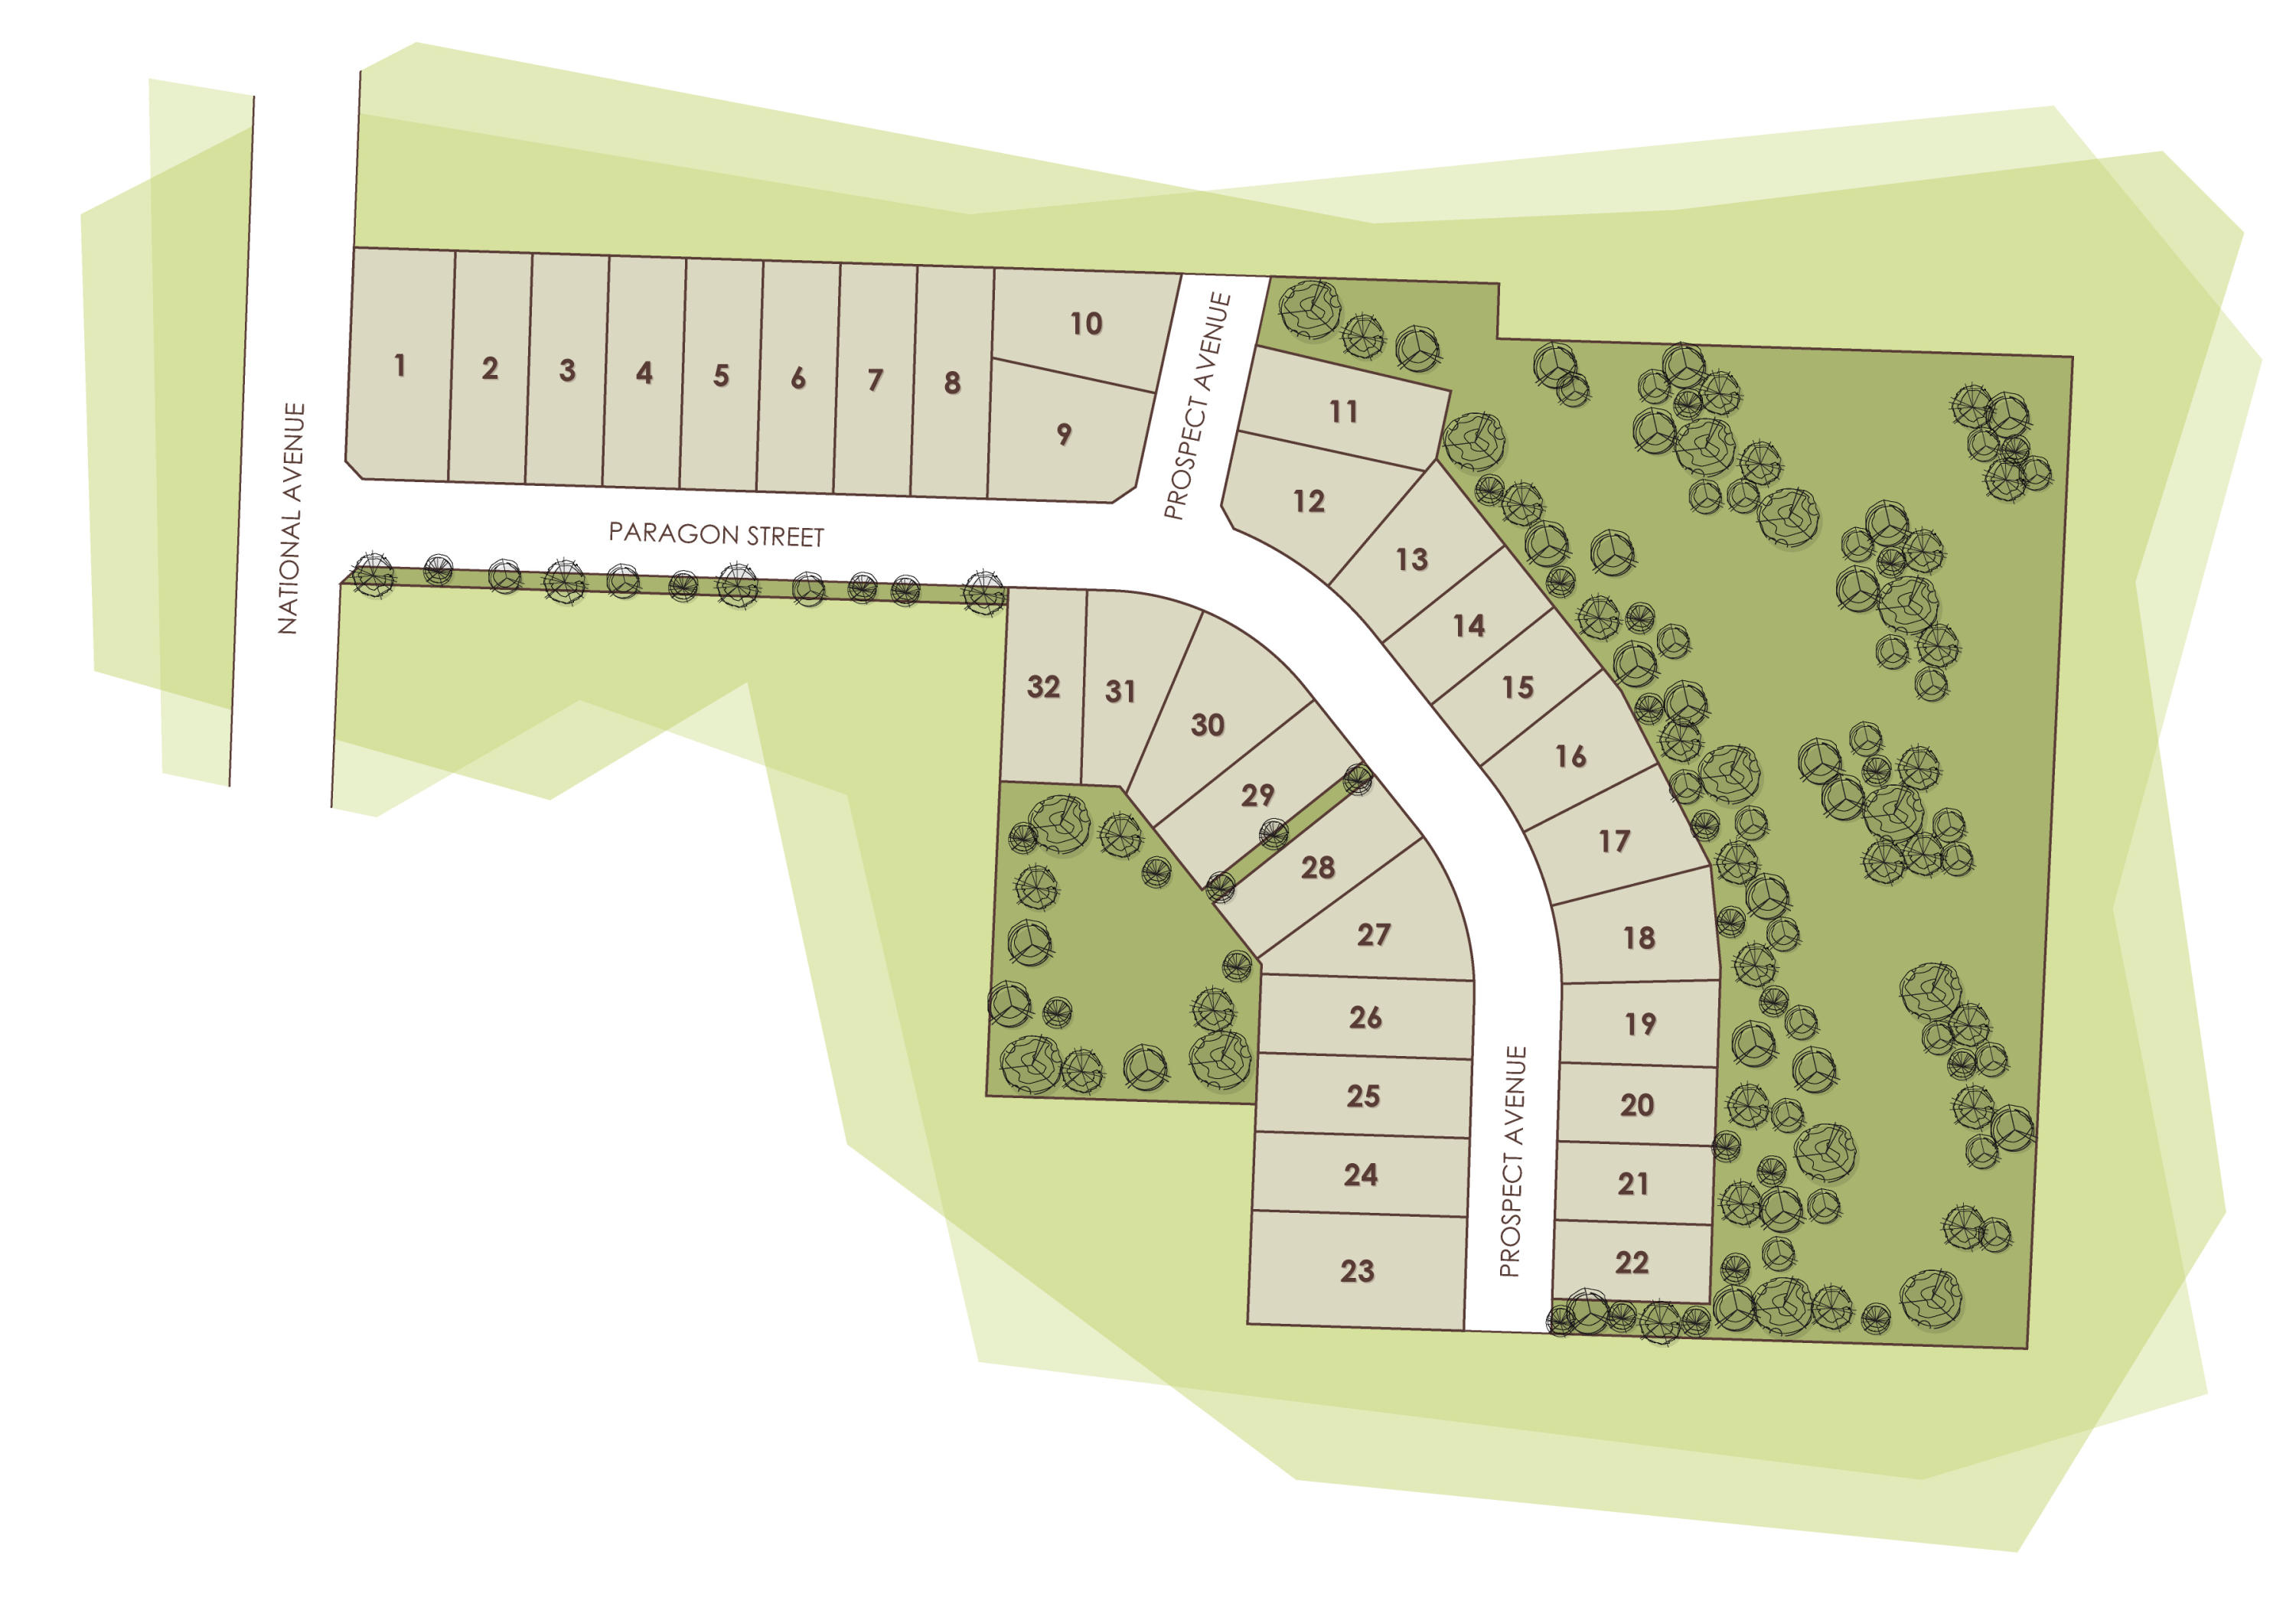 Lot 31-32 Paragon Court Springfield, MO 65803